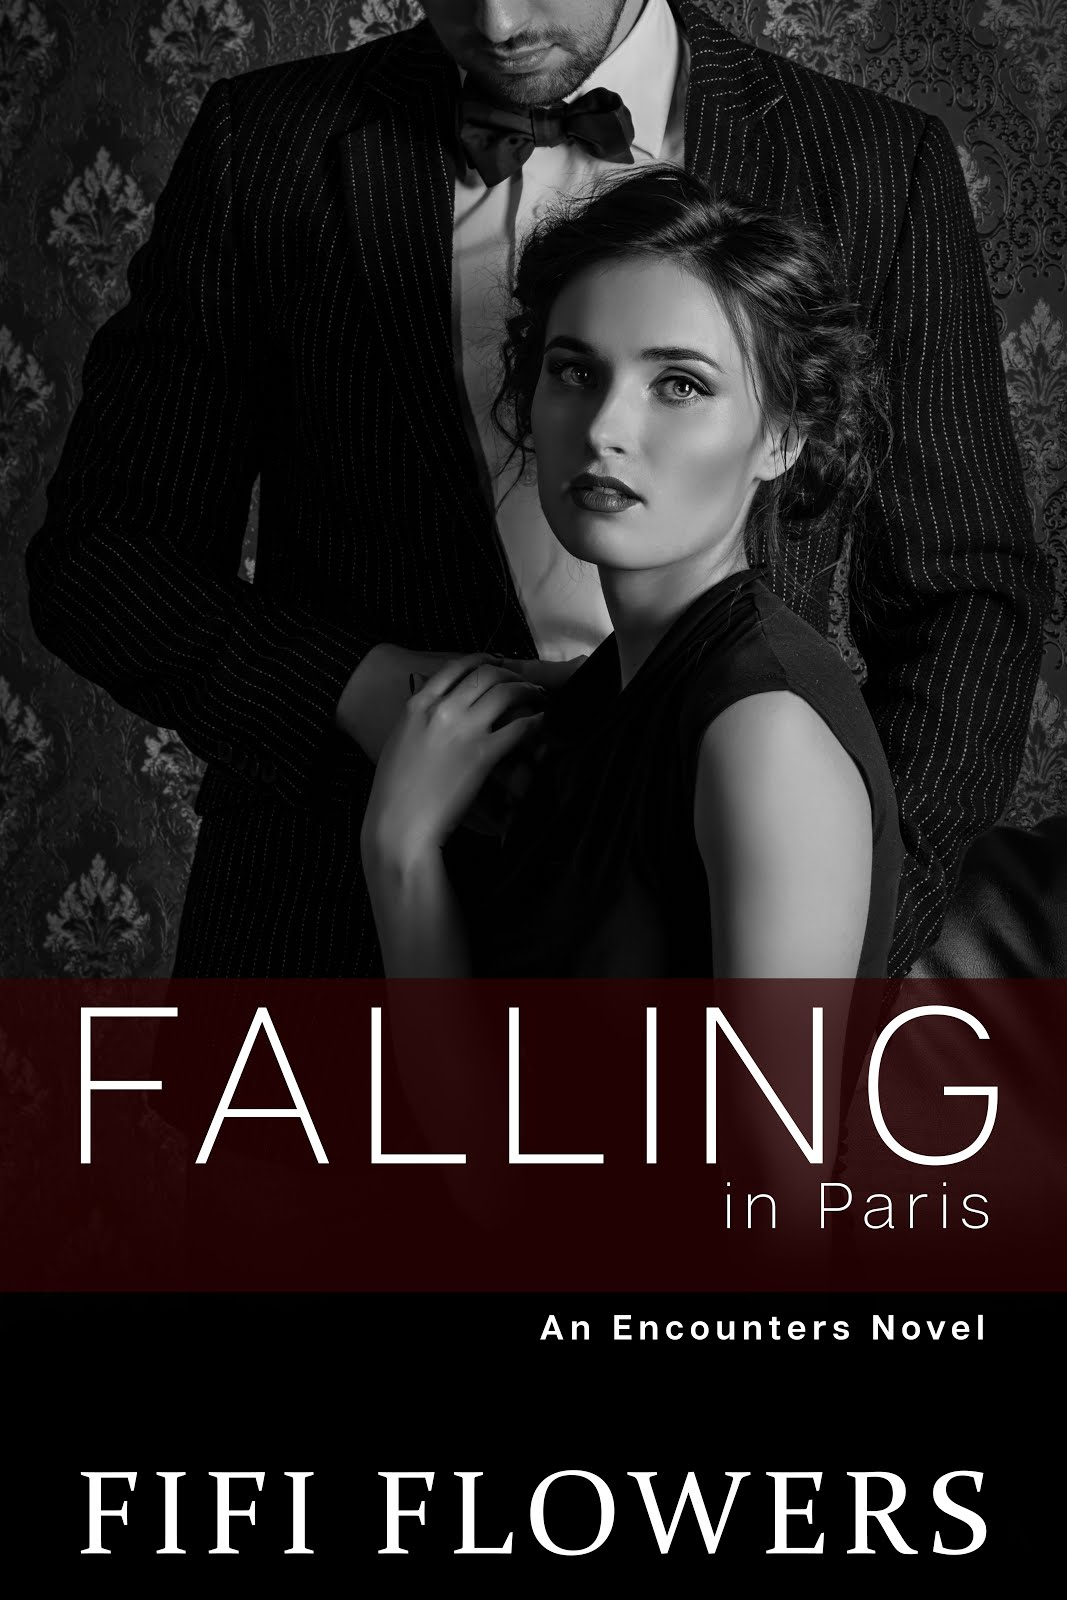 Falling in Paris